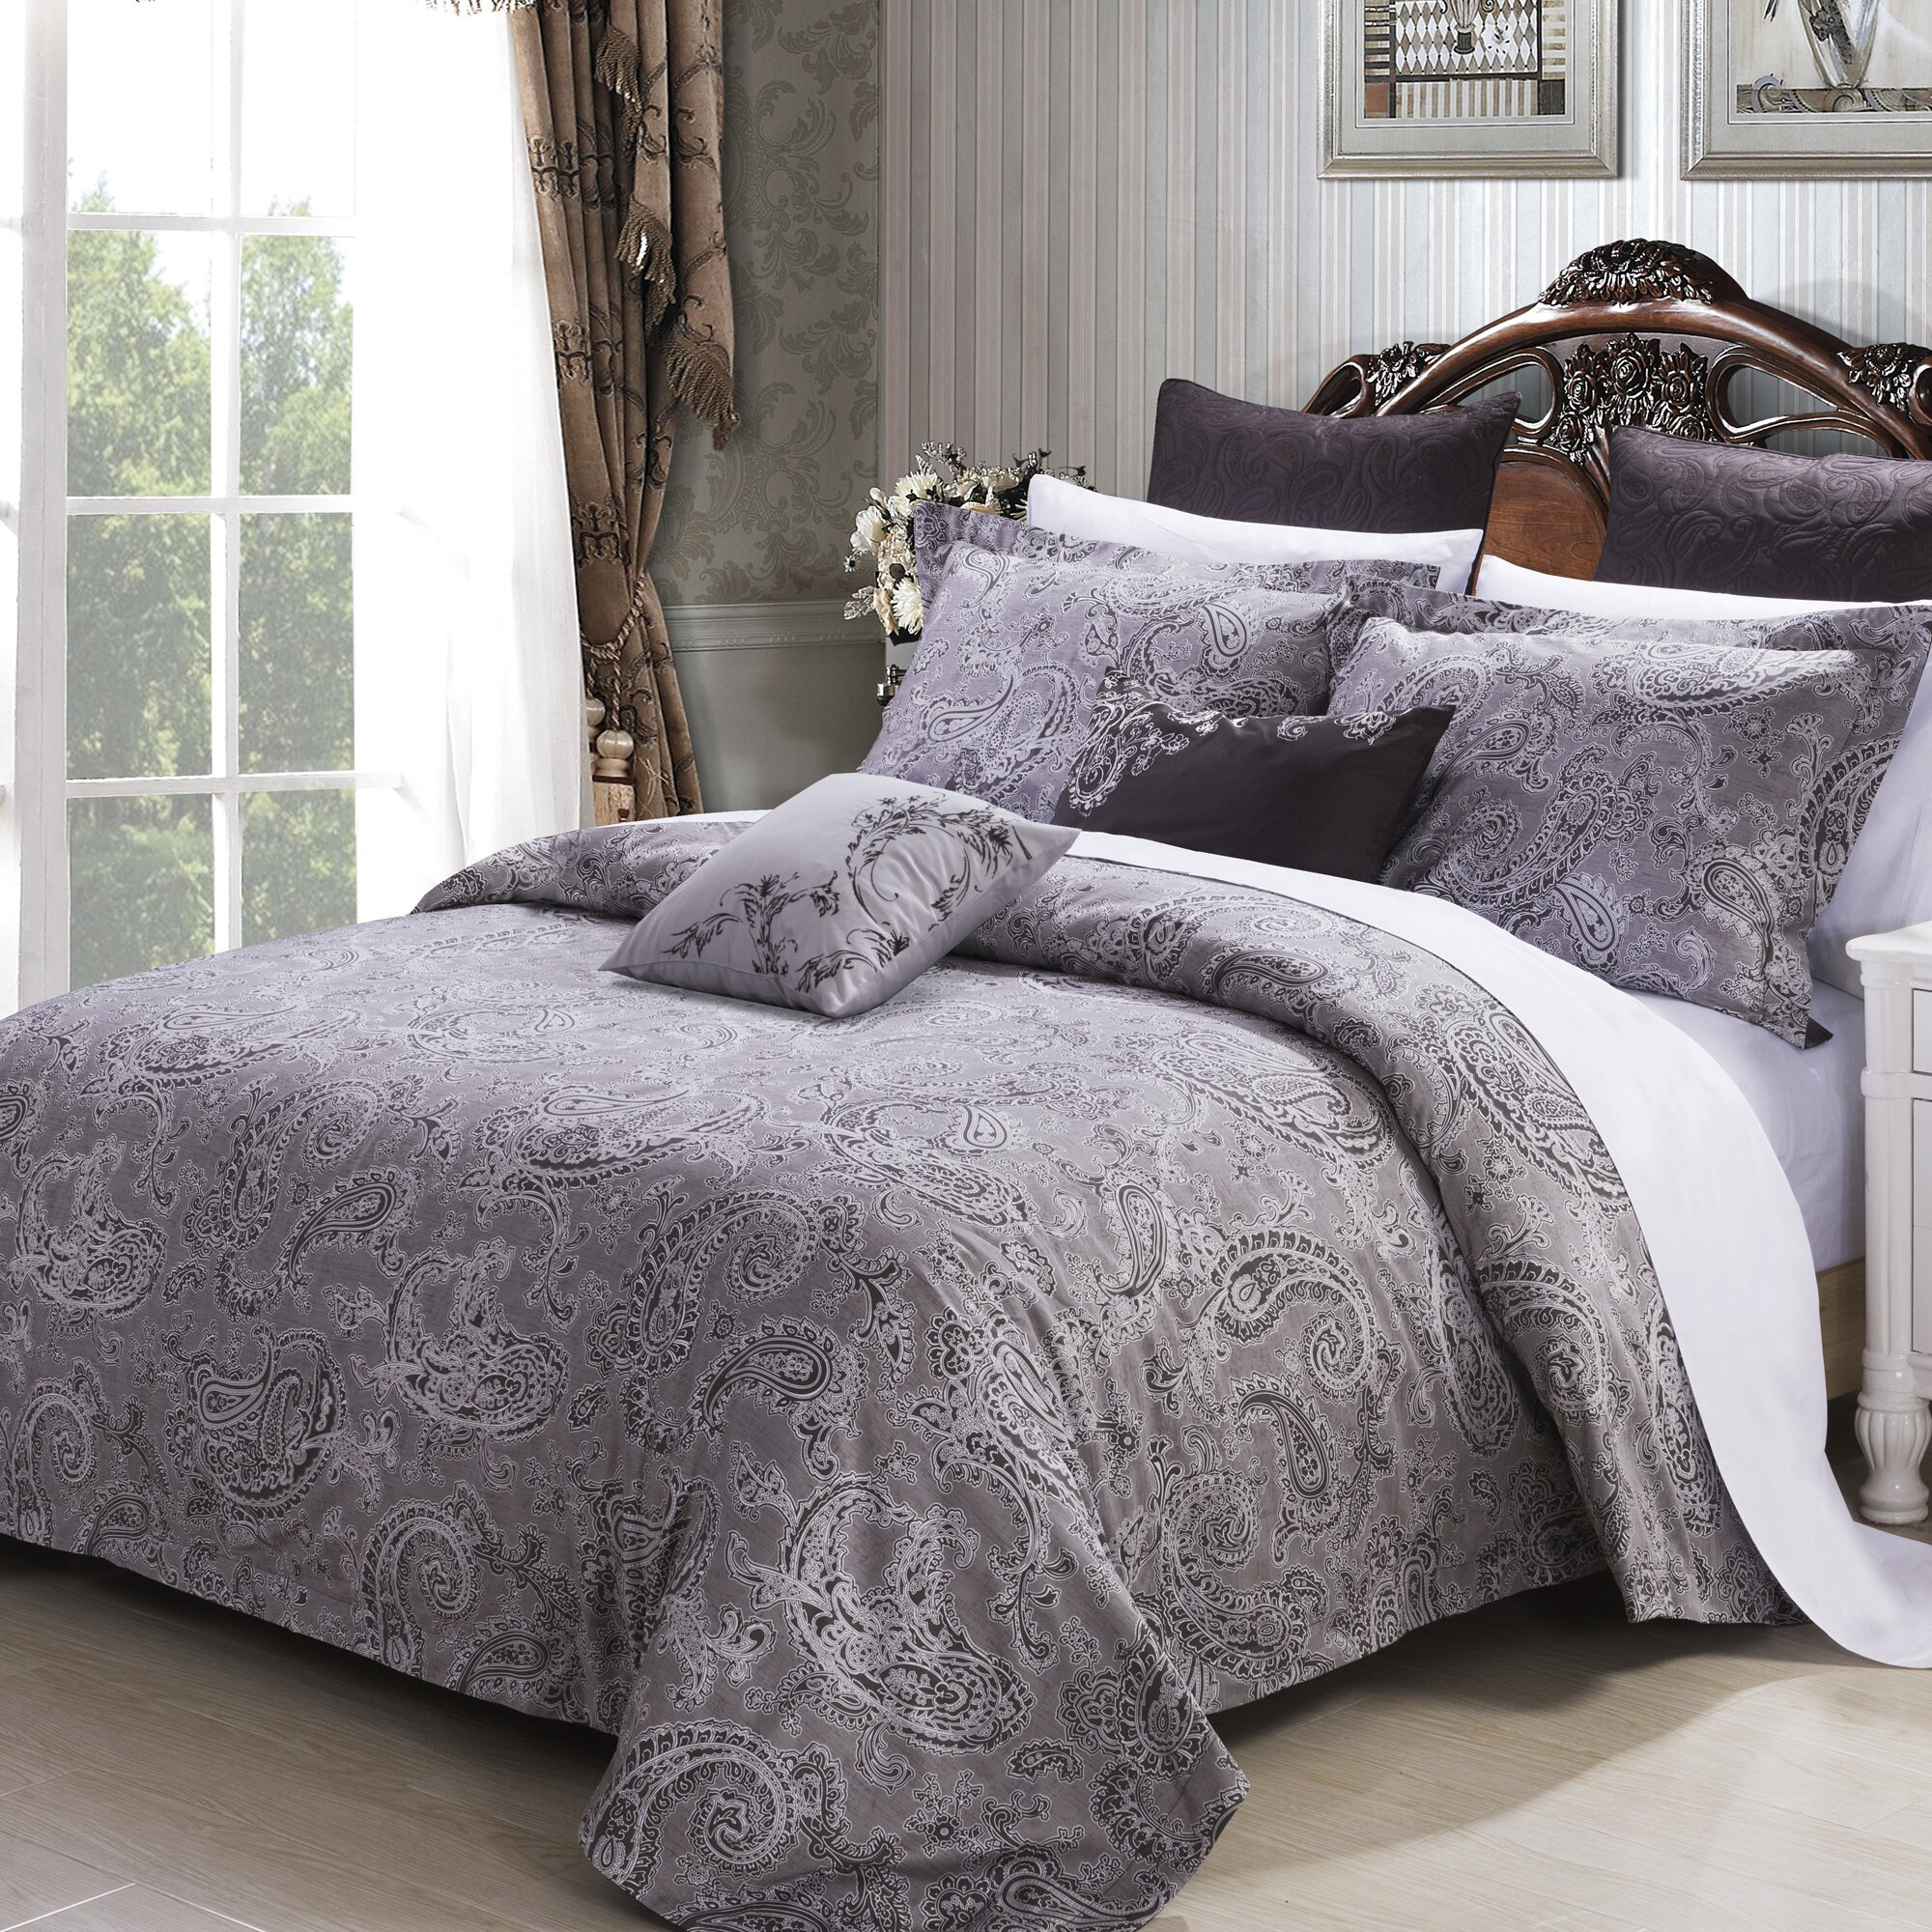 Pin Up Bed Covers North Home Paris Piece Duvet Cover Set